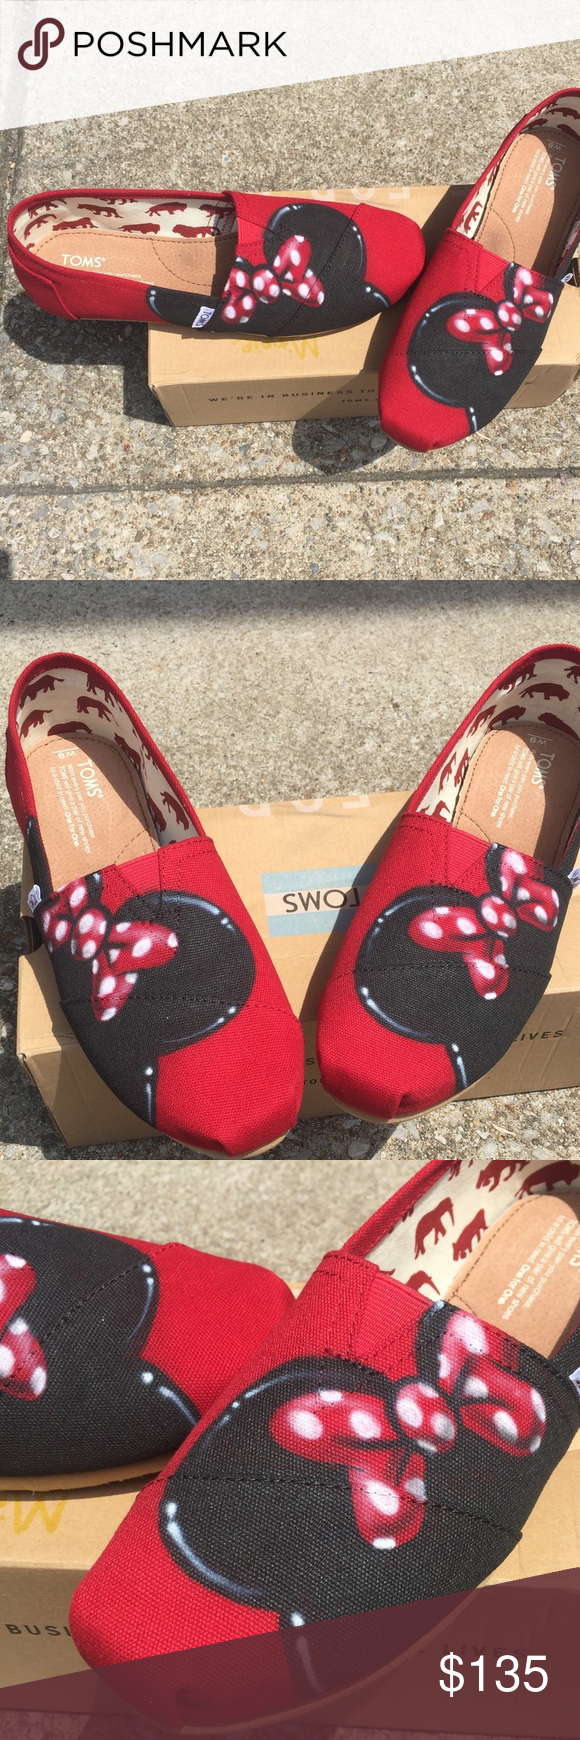 41e47e95c1d New Custom Airbrush Disney Minnie Mouse Toms Custom Airbrush Disney Toms.  Any size available. Allow 5 business days to ship. Toms Shoes Flats    Loafers